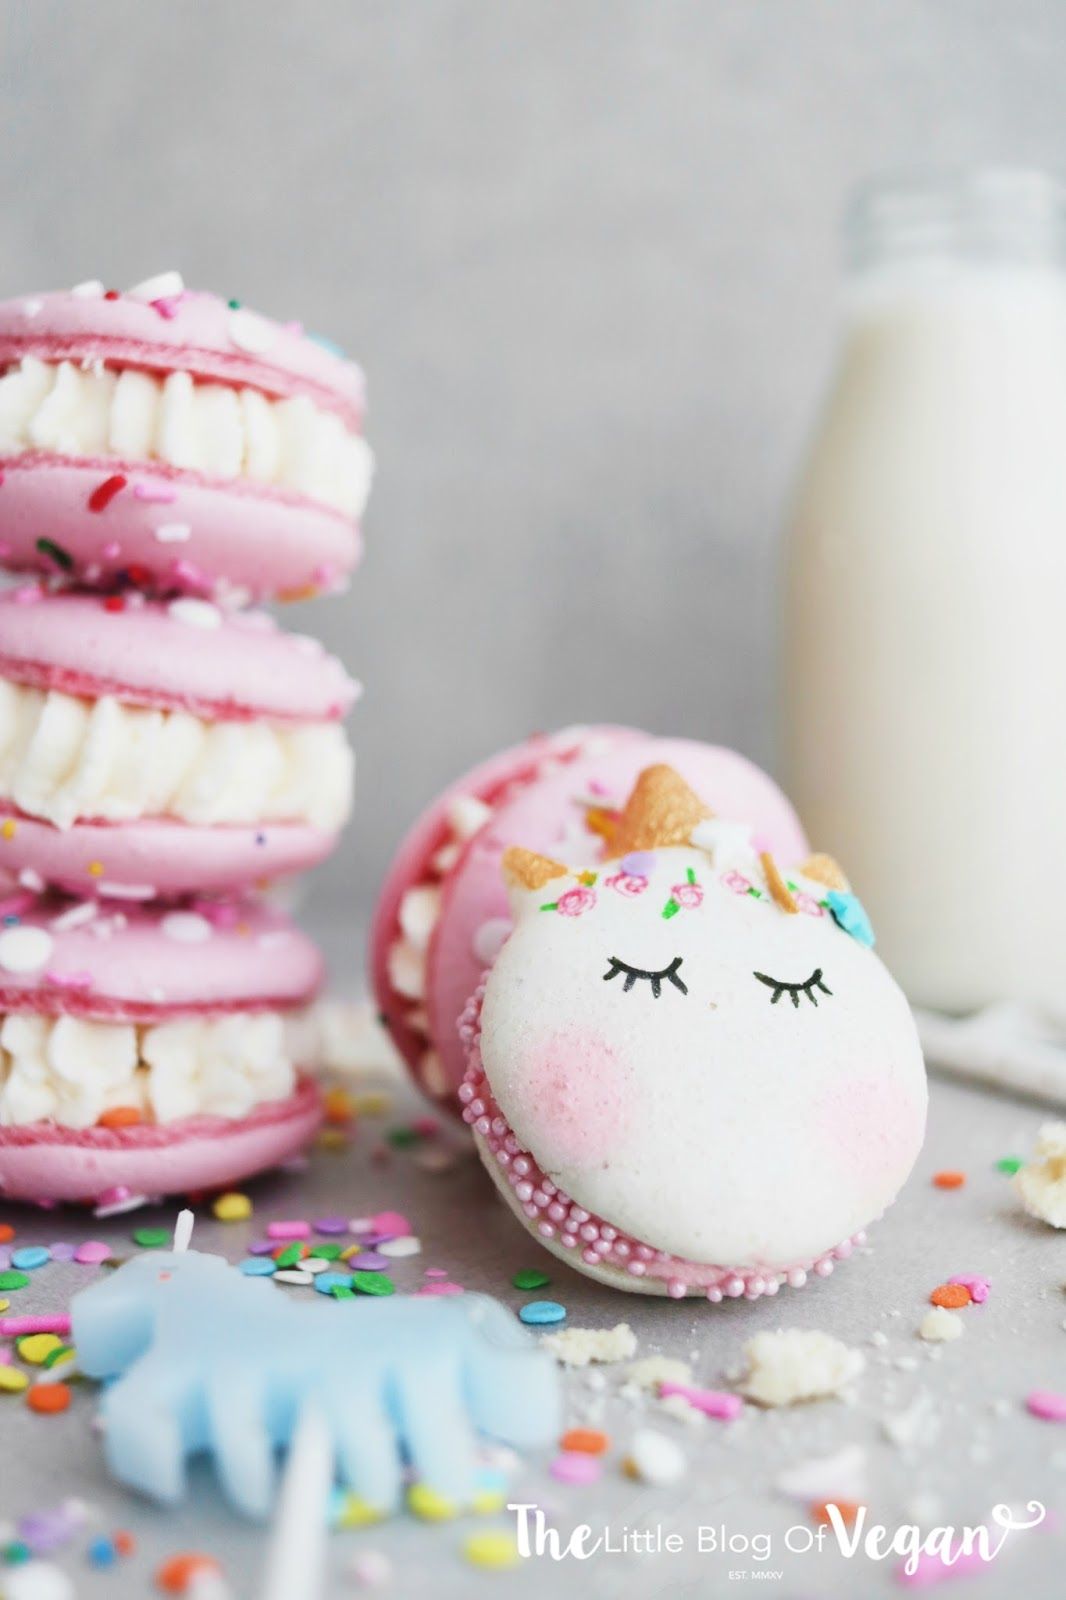 These Macarons Have A Delicious Crisp Shell Which Is Soft On The Inside Filled With Light Creamy Buttercream Centre They Are Extremely Moorish